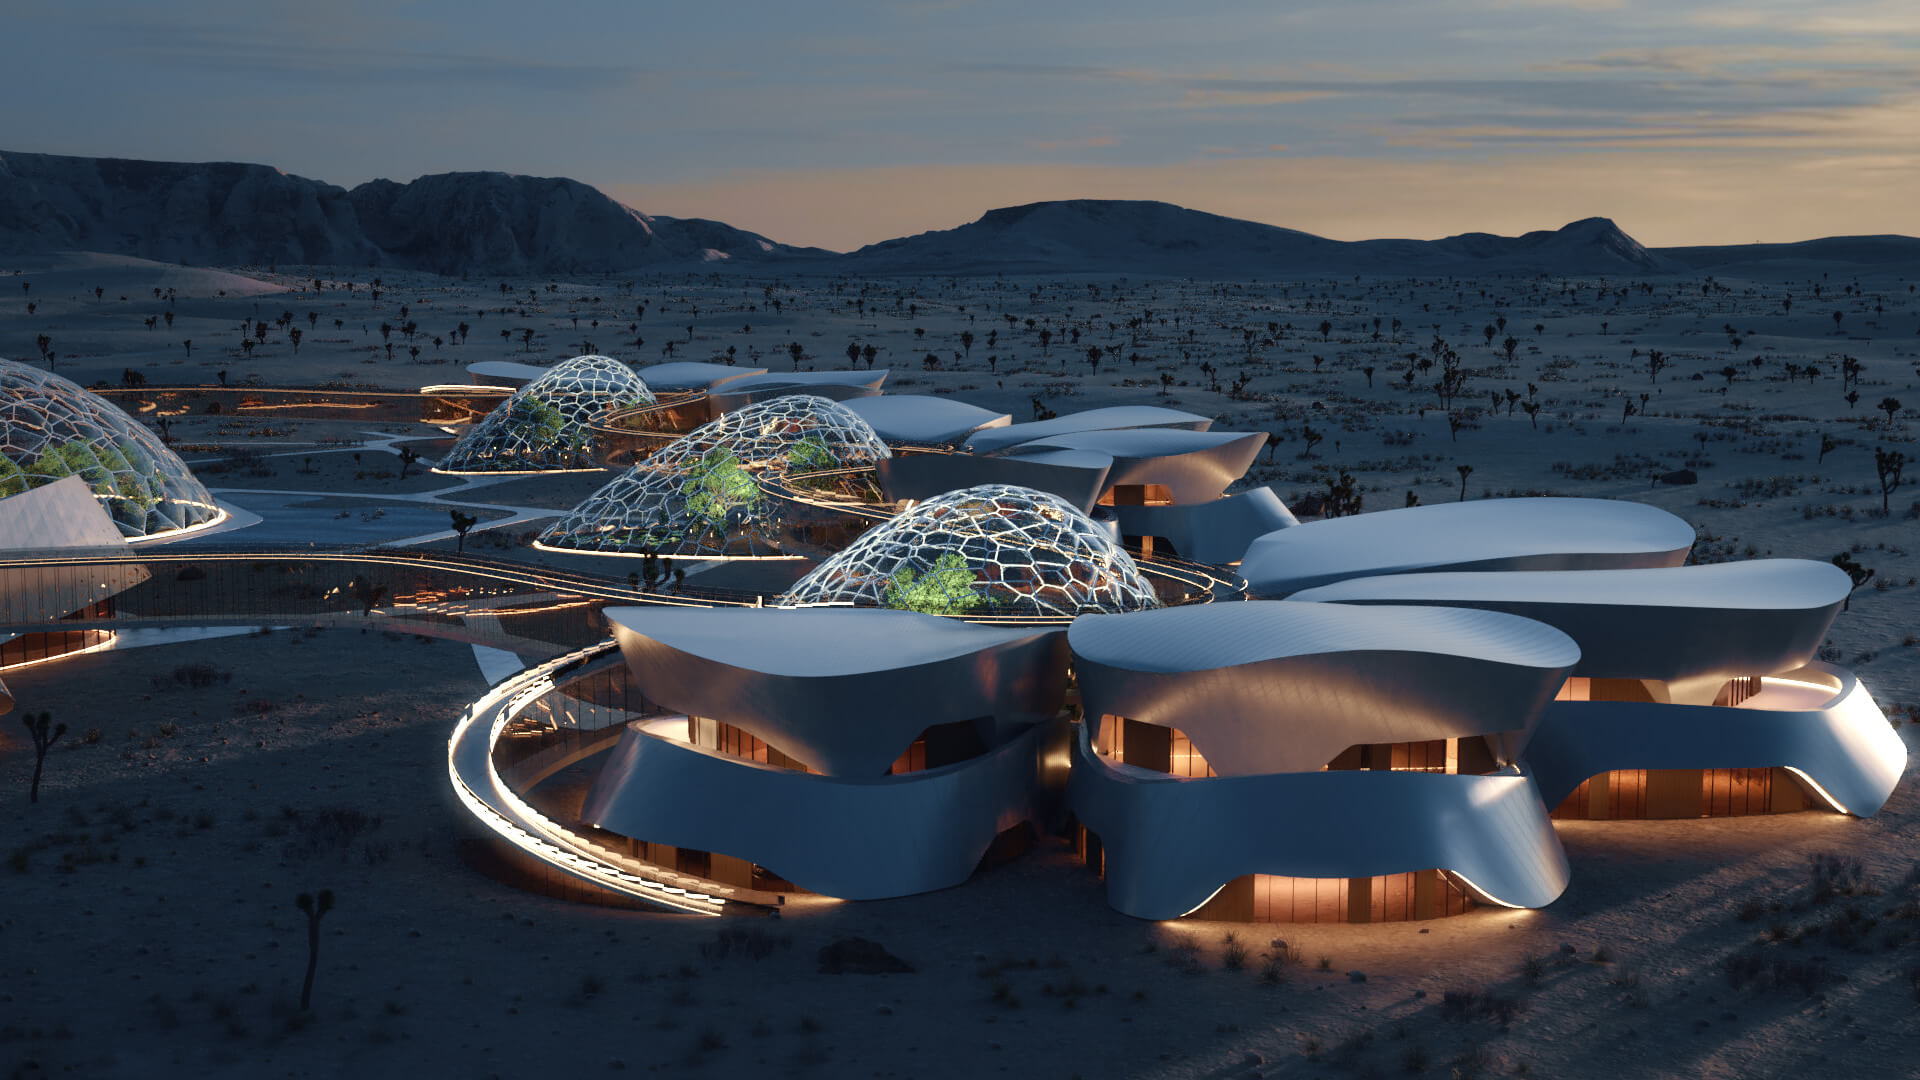 Fluid forms give shape to the functional stations| EBIOS by Interstellar Lab | STIRworld